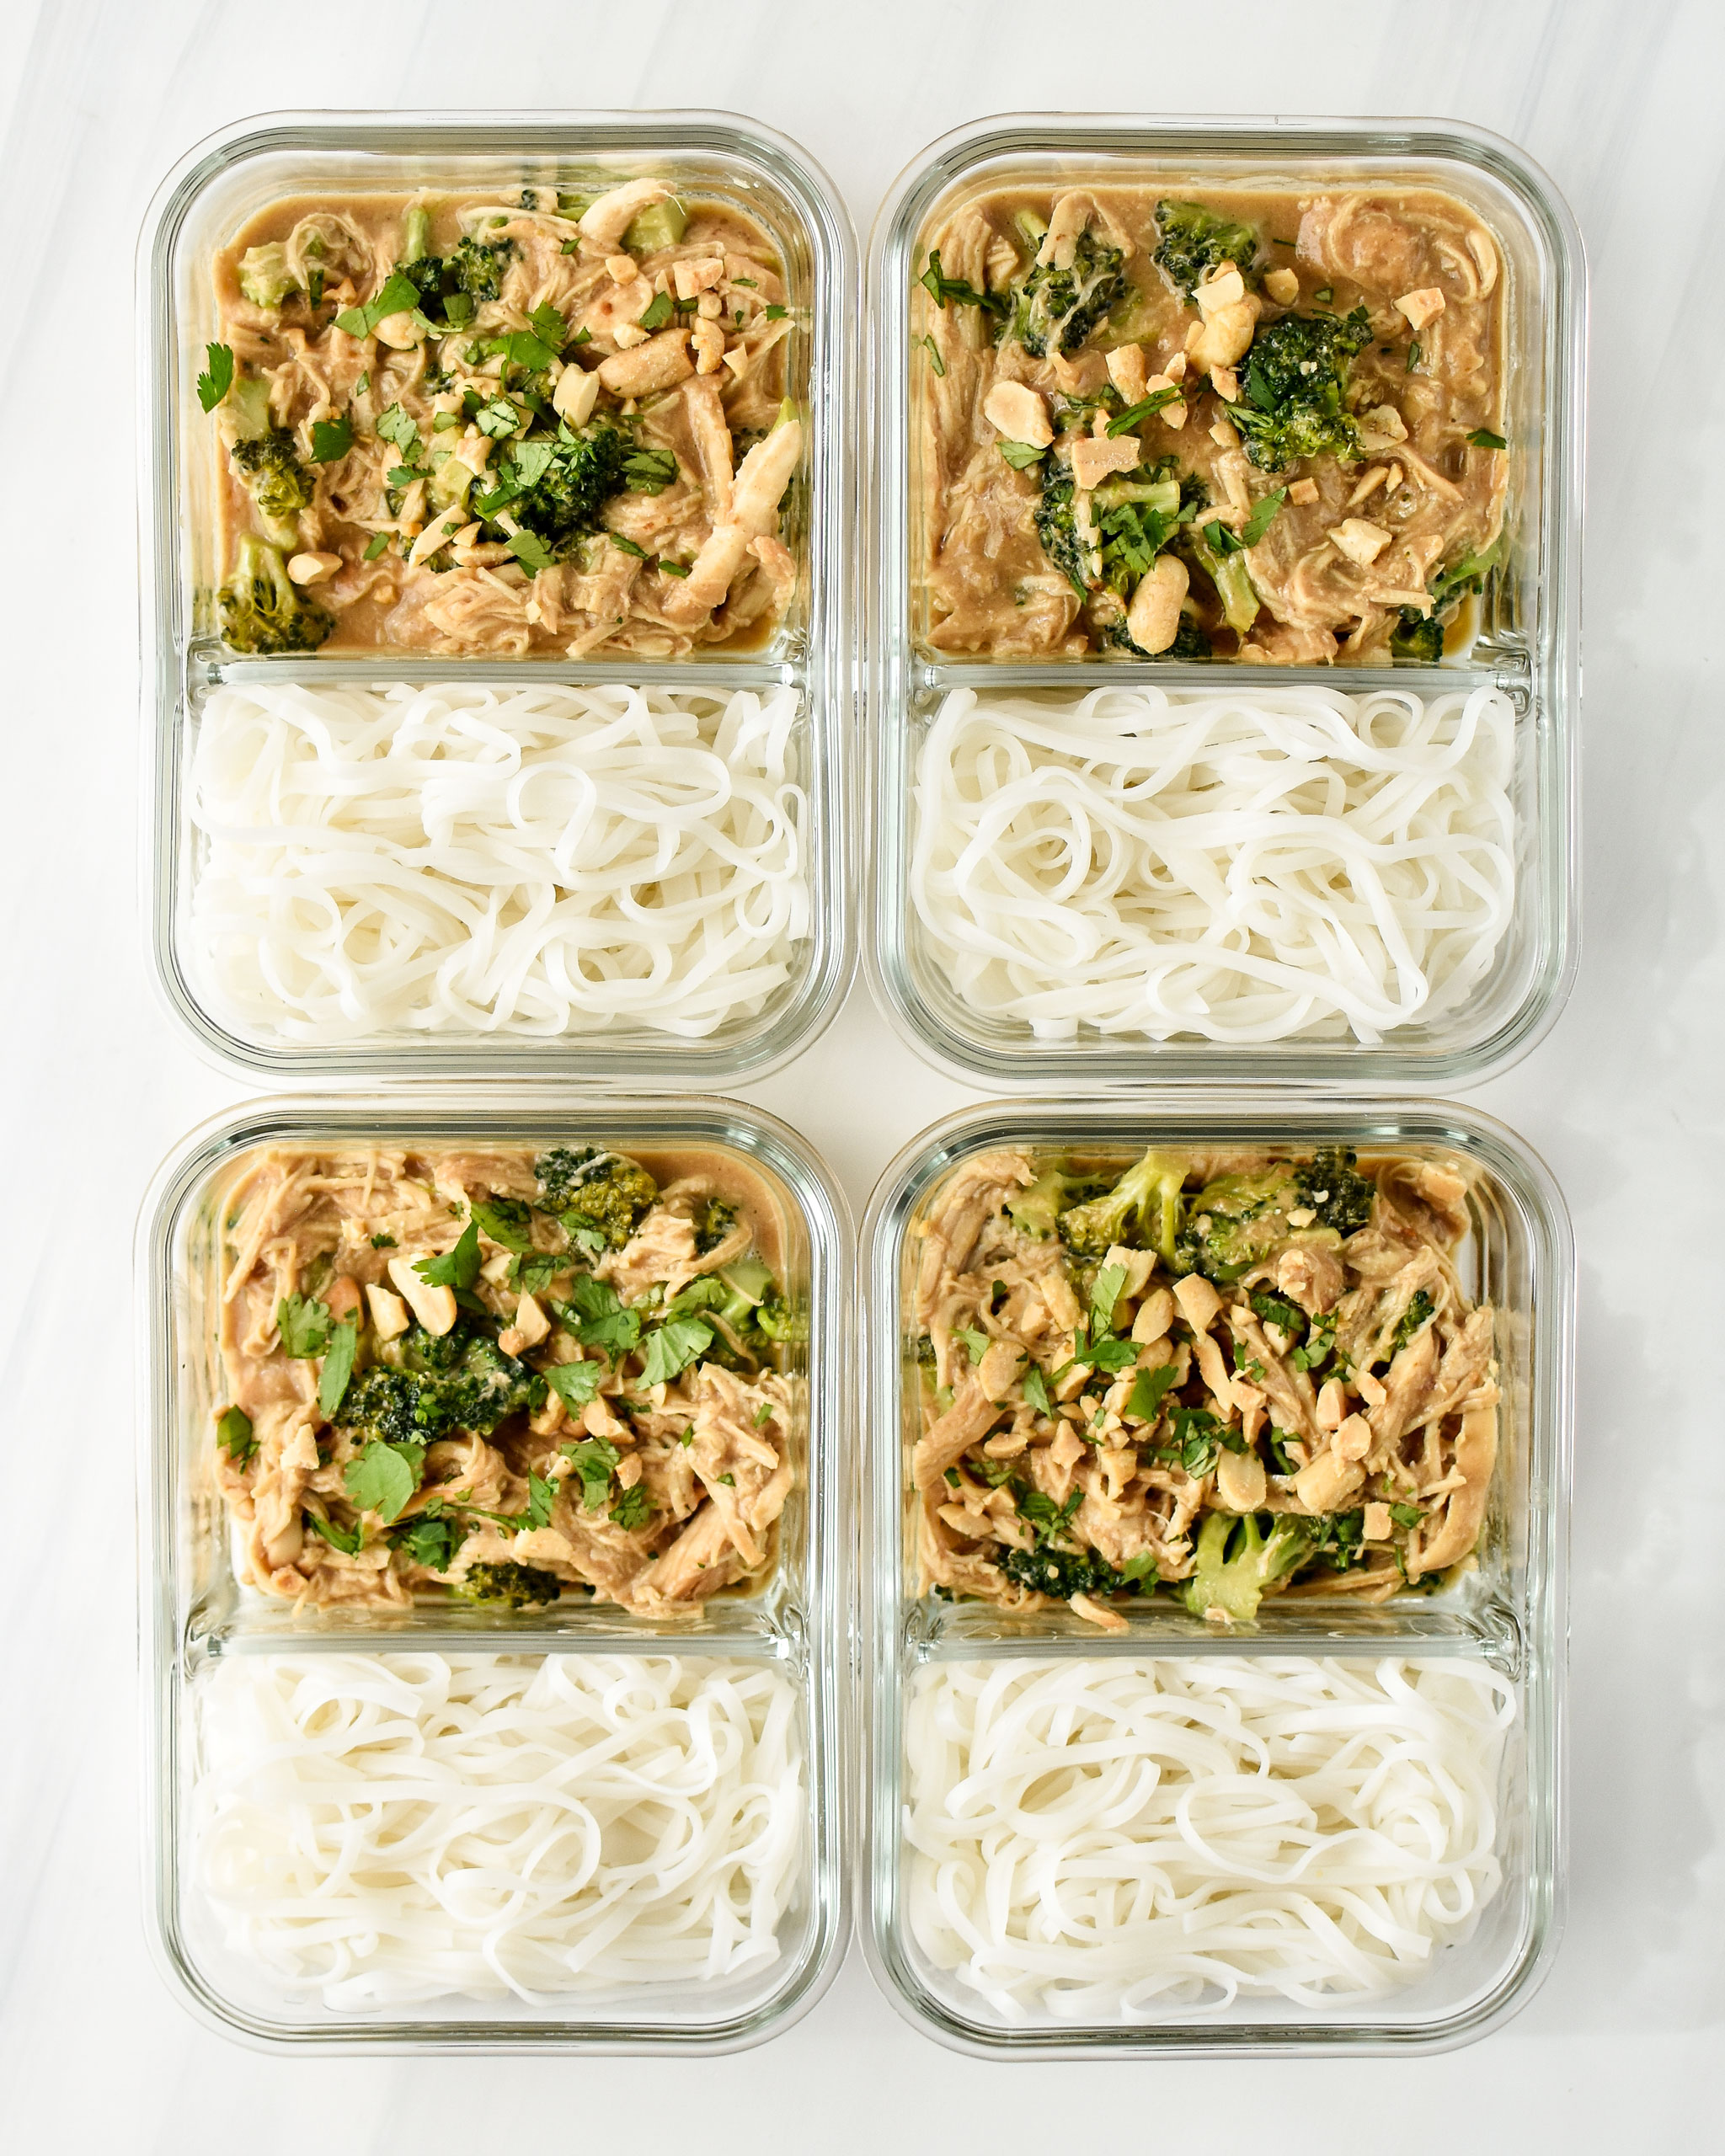 slow cooker peanut chicken noodle meal prep pictured in glass meal prep containers